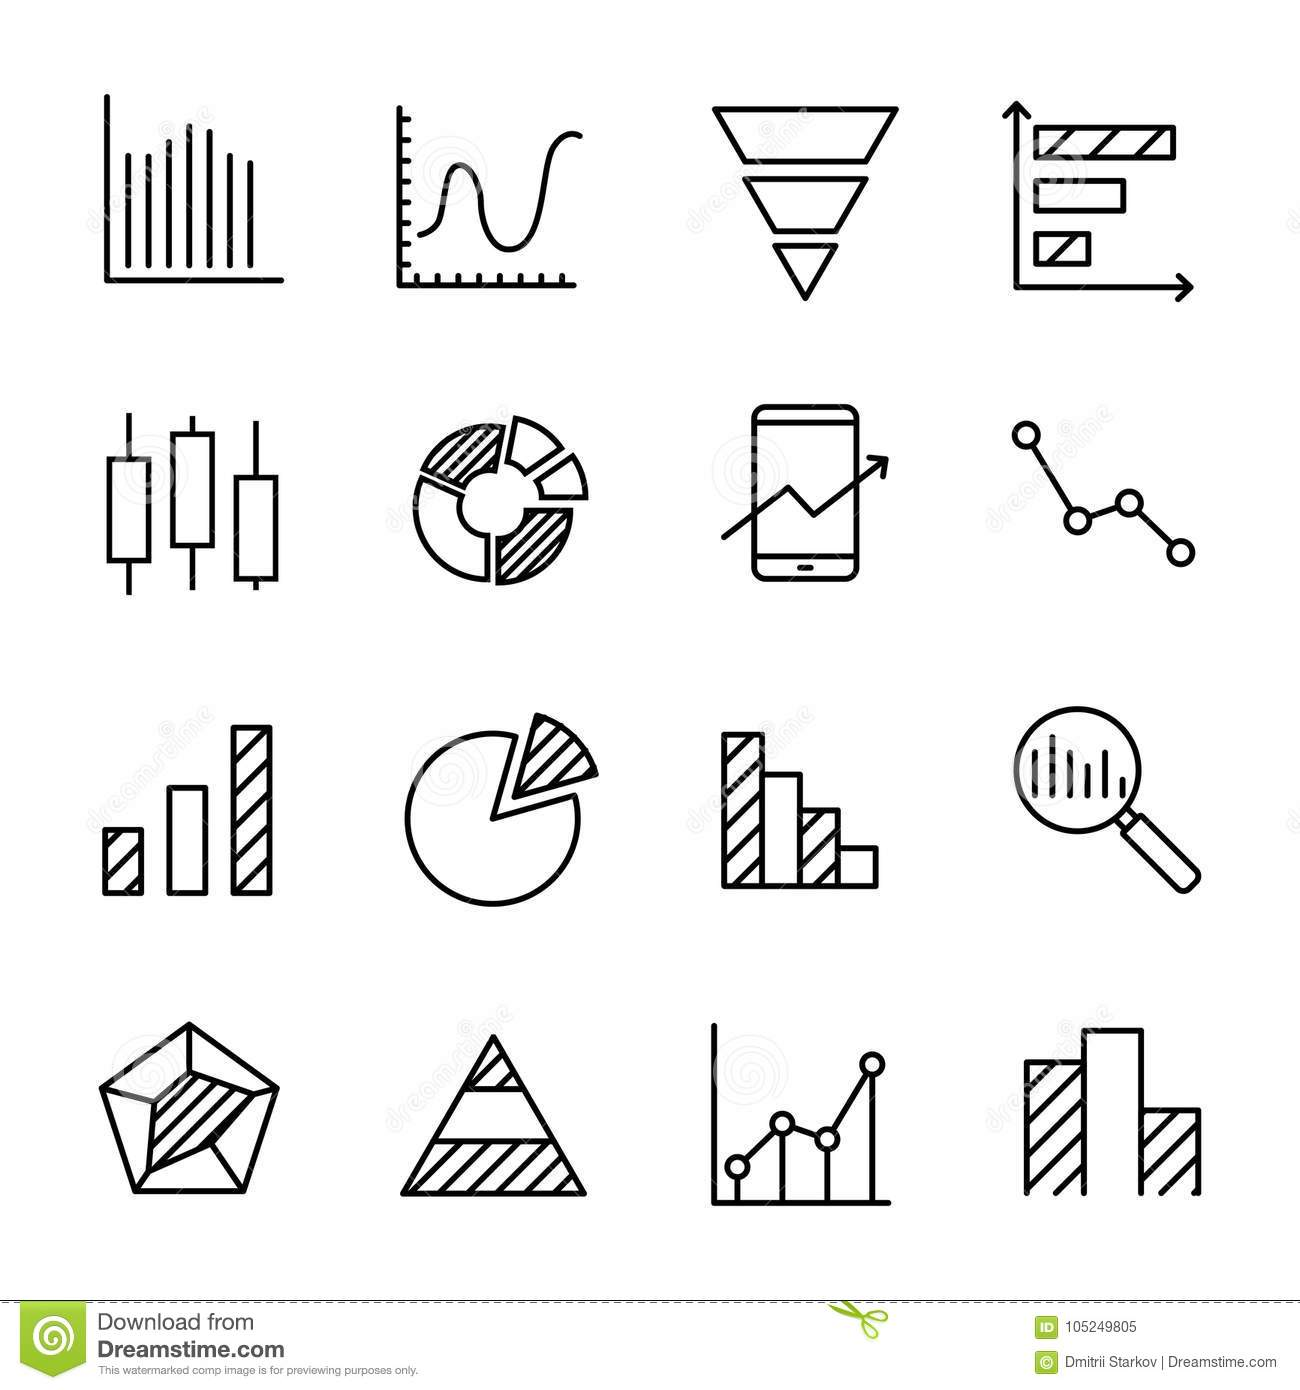 Web Diagram Simple Detailed Schematic Diagrams Block Set Of Related Outline Icons Stock Vector